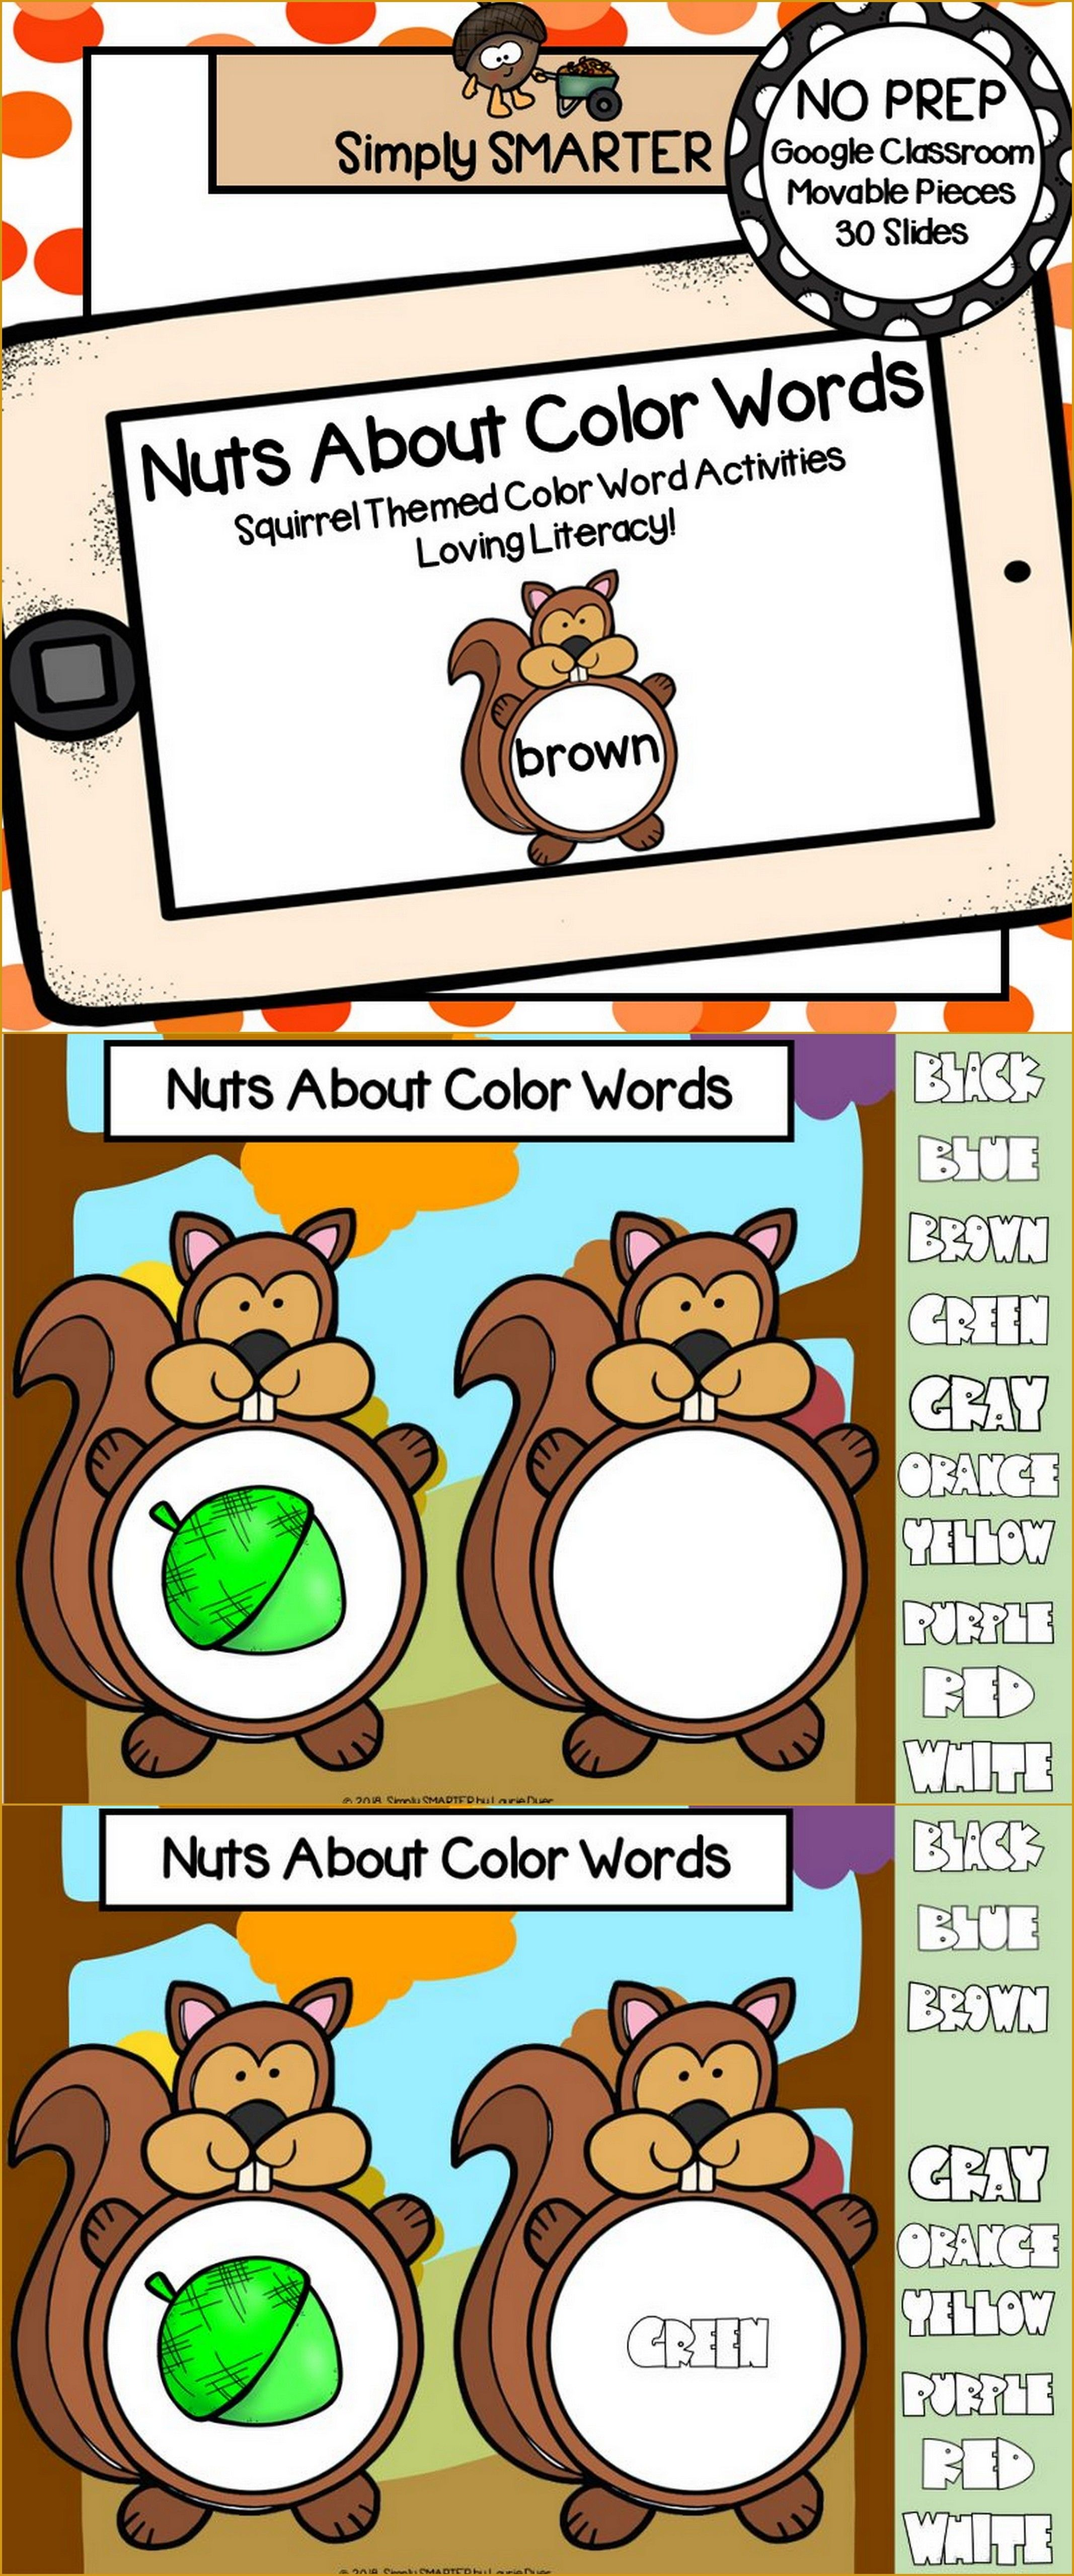 Squirrel Themed Color Word Activities For Classroom